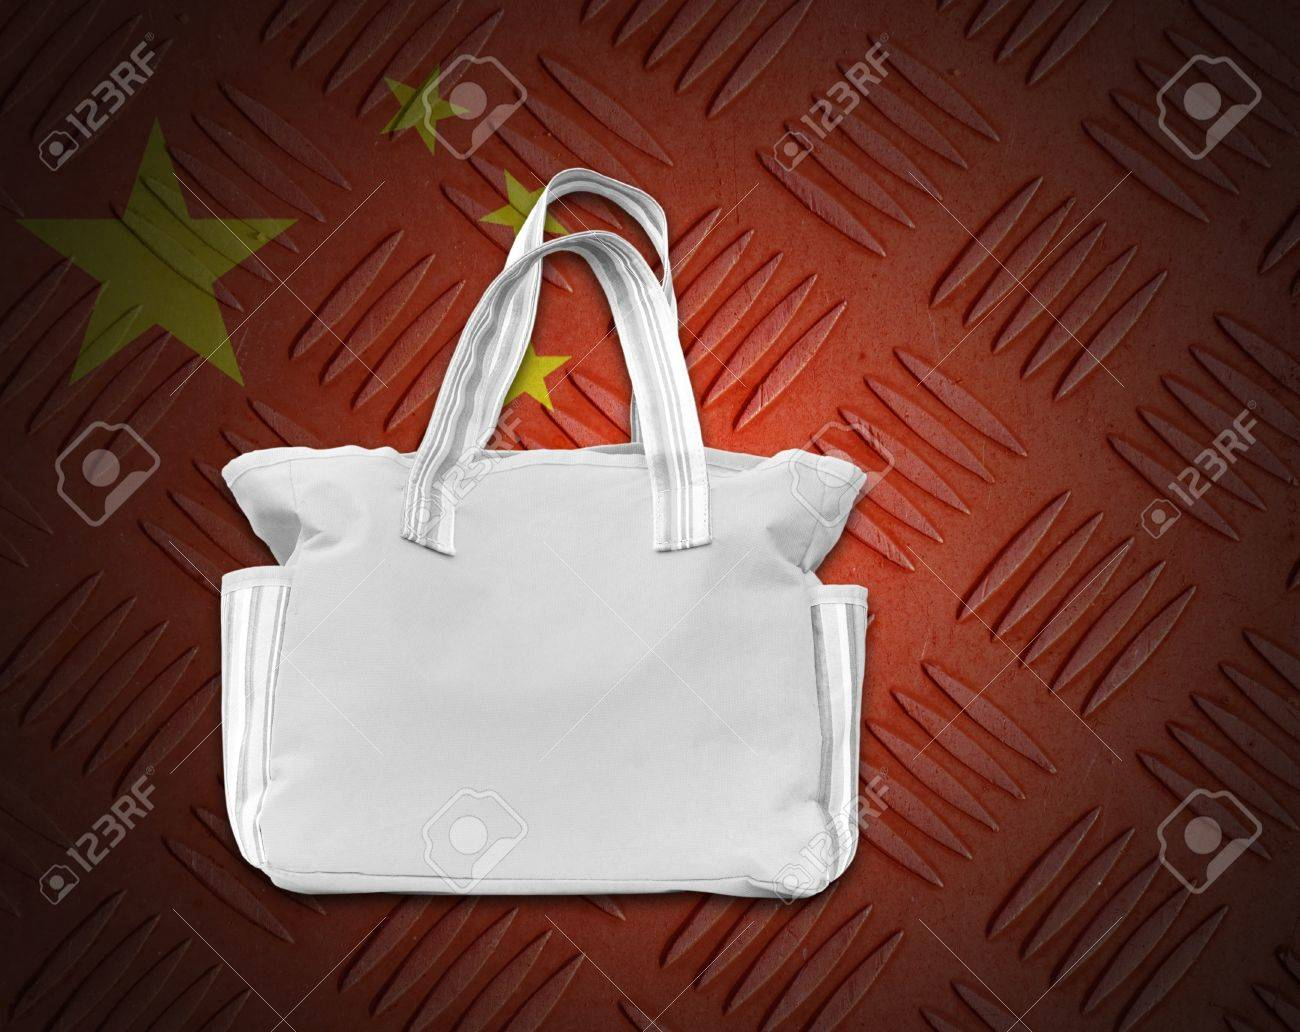 Environment concept from white cloth bag on background. Stock Photo - 15273298